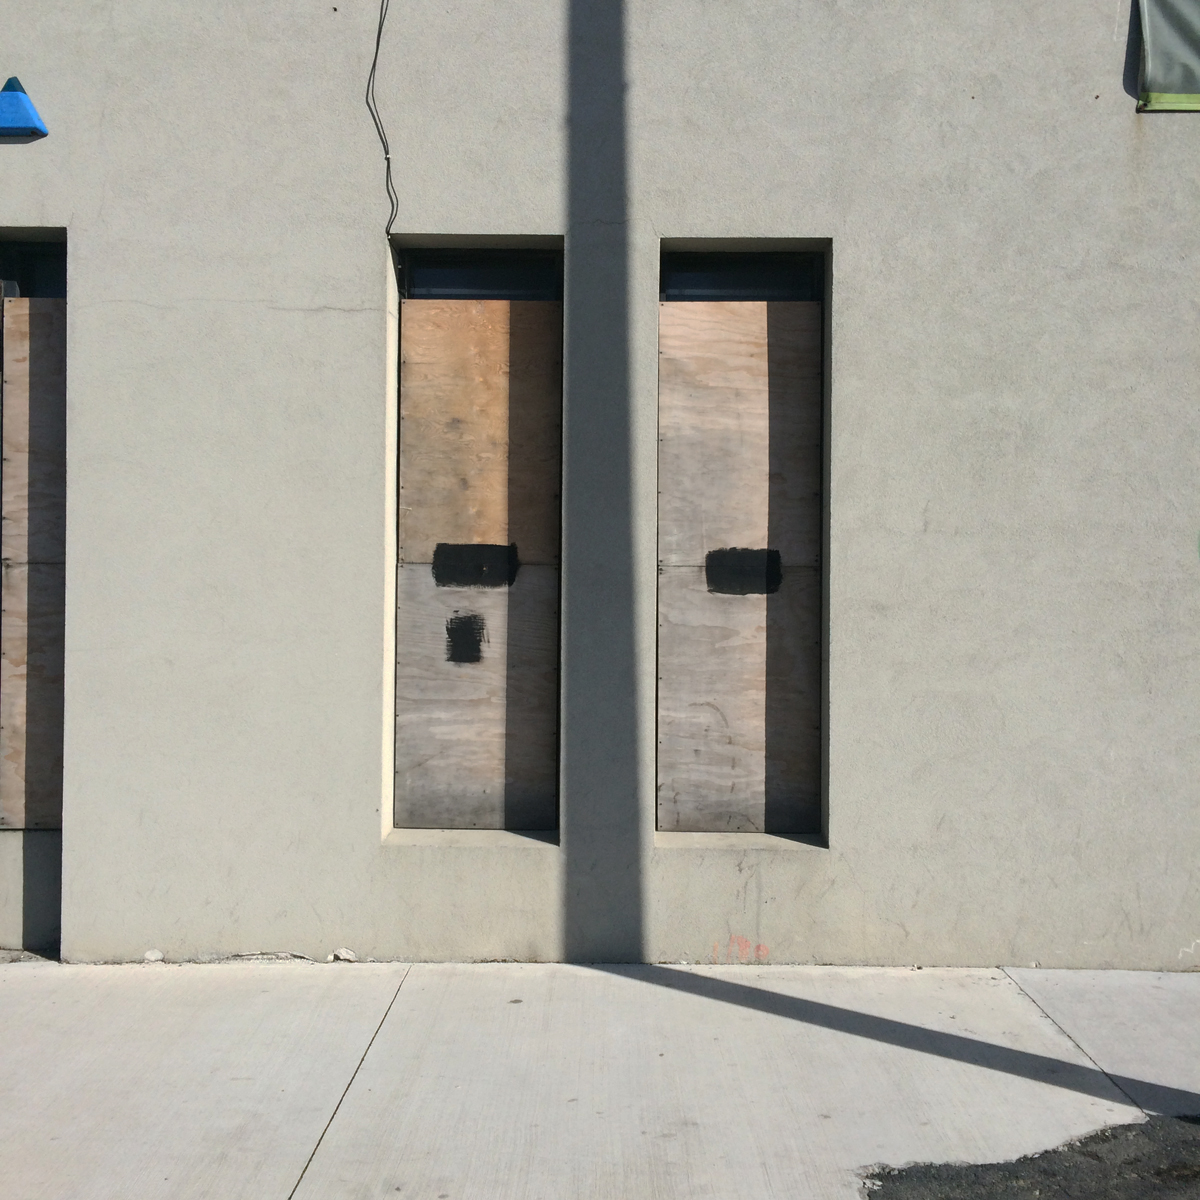 Boarded up windows on a warm grey building with a shadow from a light pole.